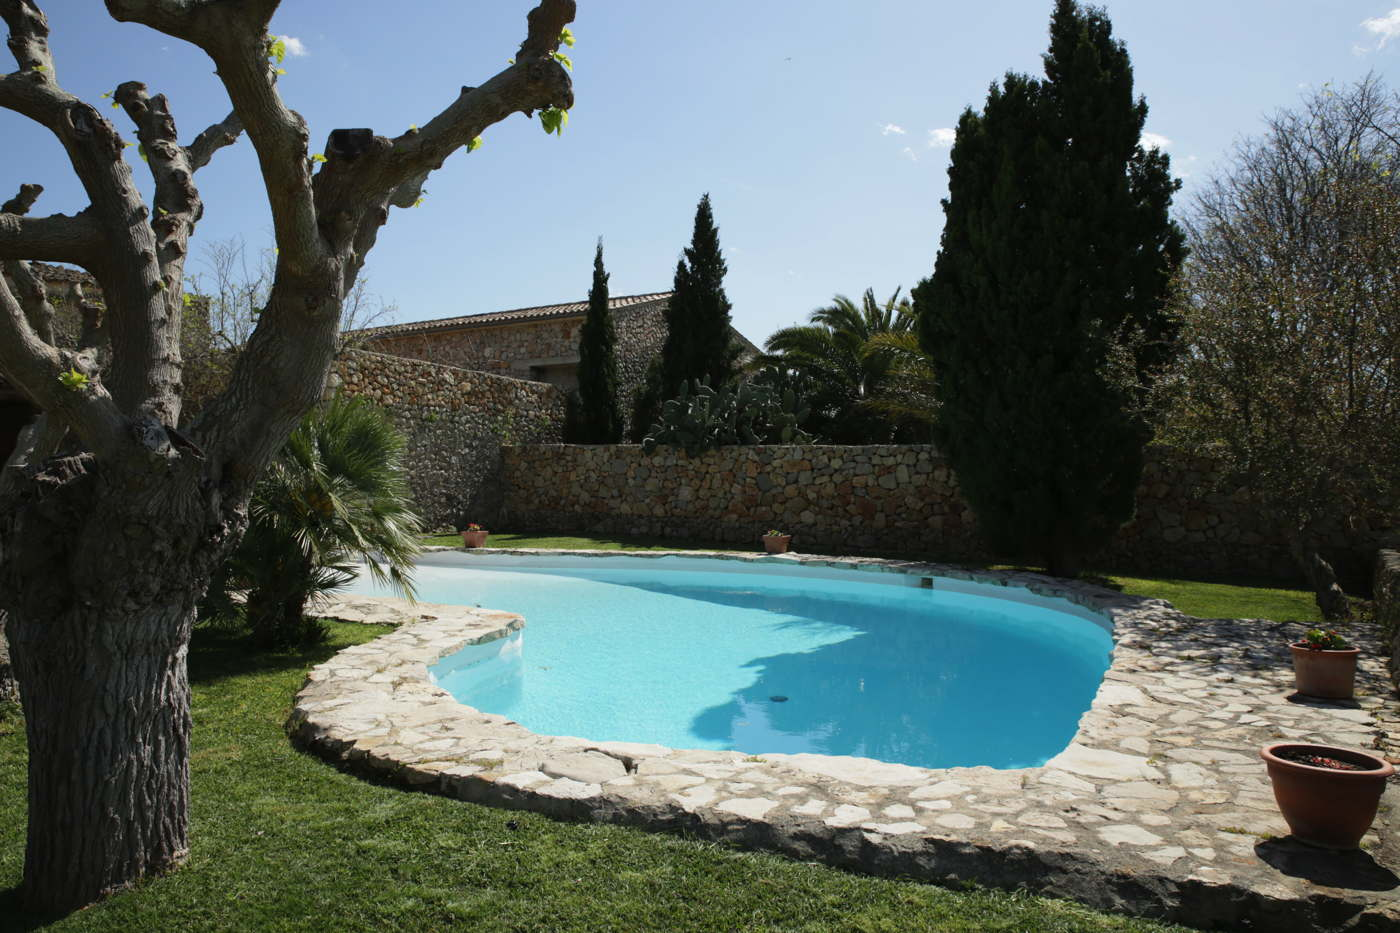 ferien finca mit pool f r 10 personen bei buger mallorca spanien mieten. Black Bedroom Furniture Sets. Home Design Ideas